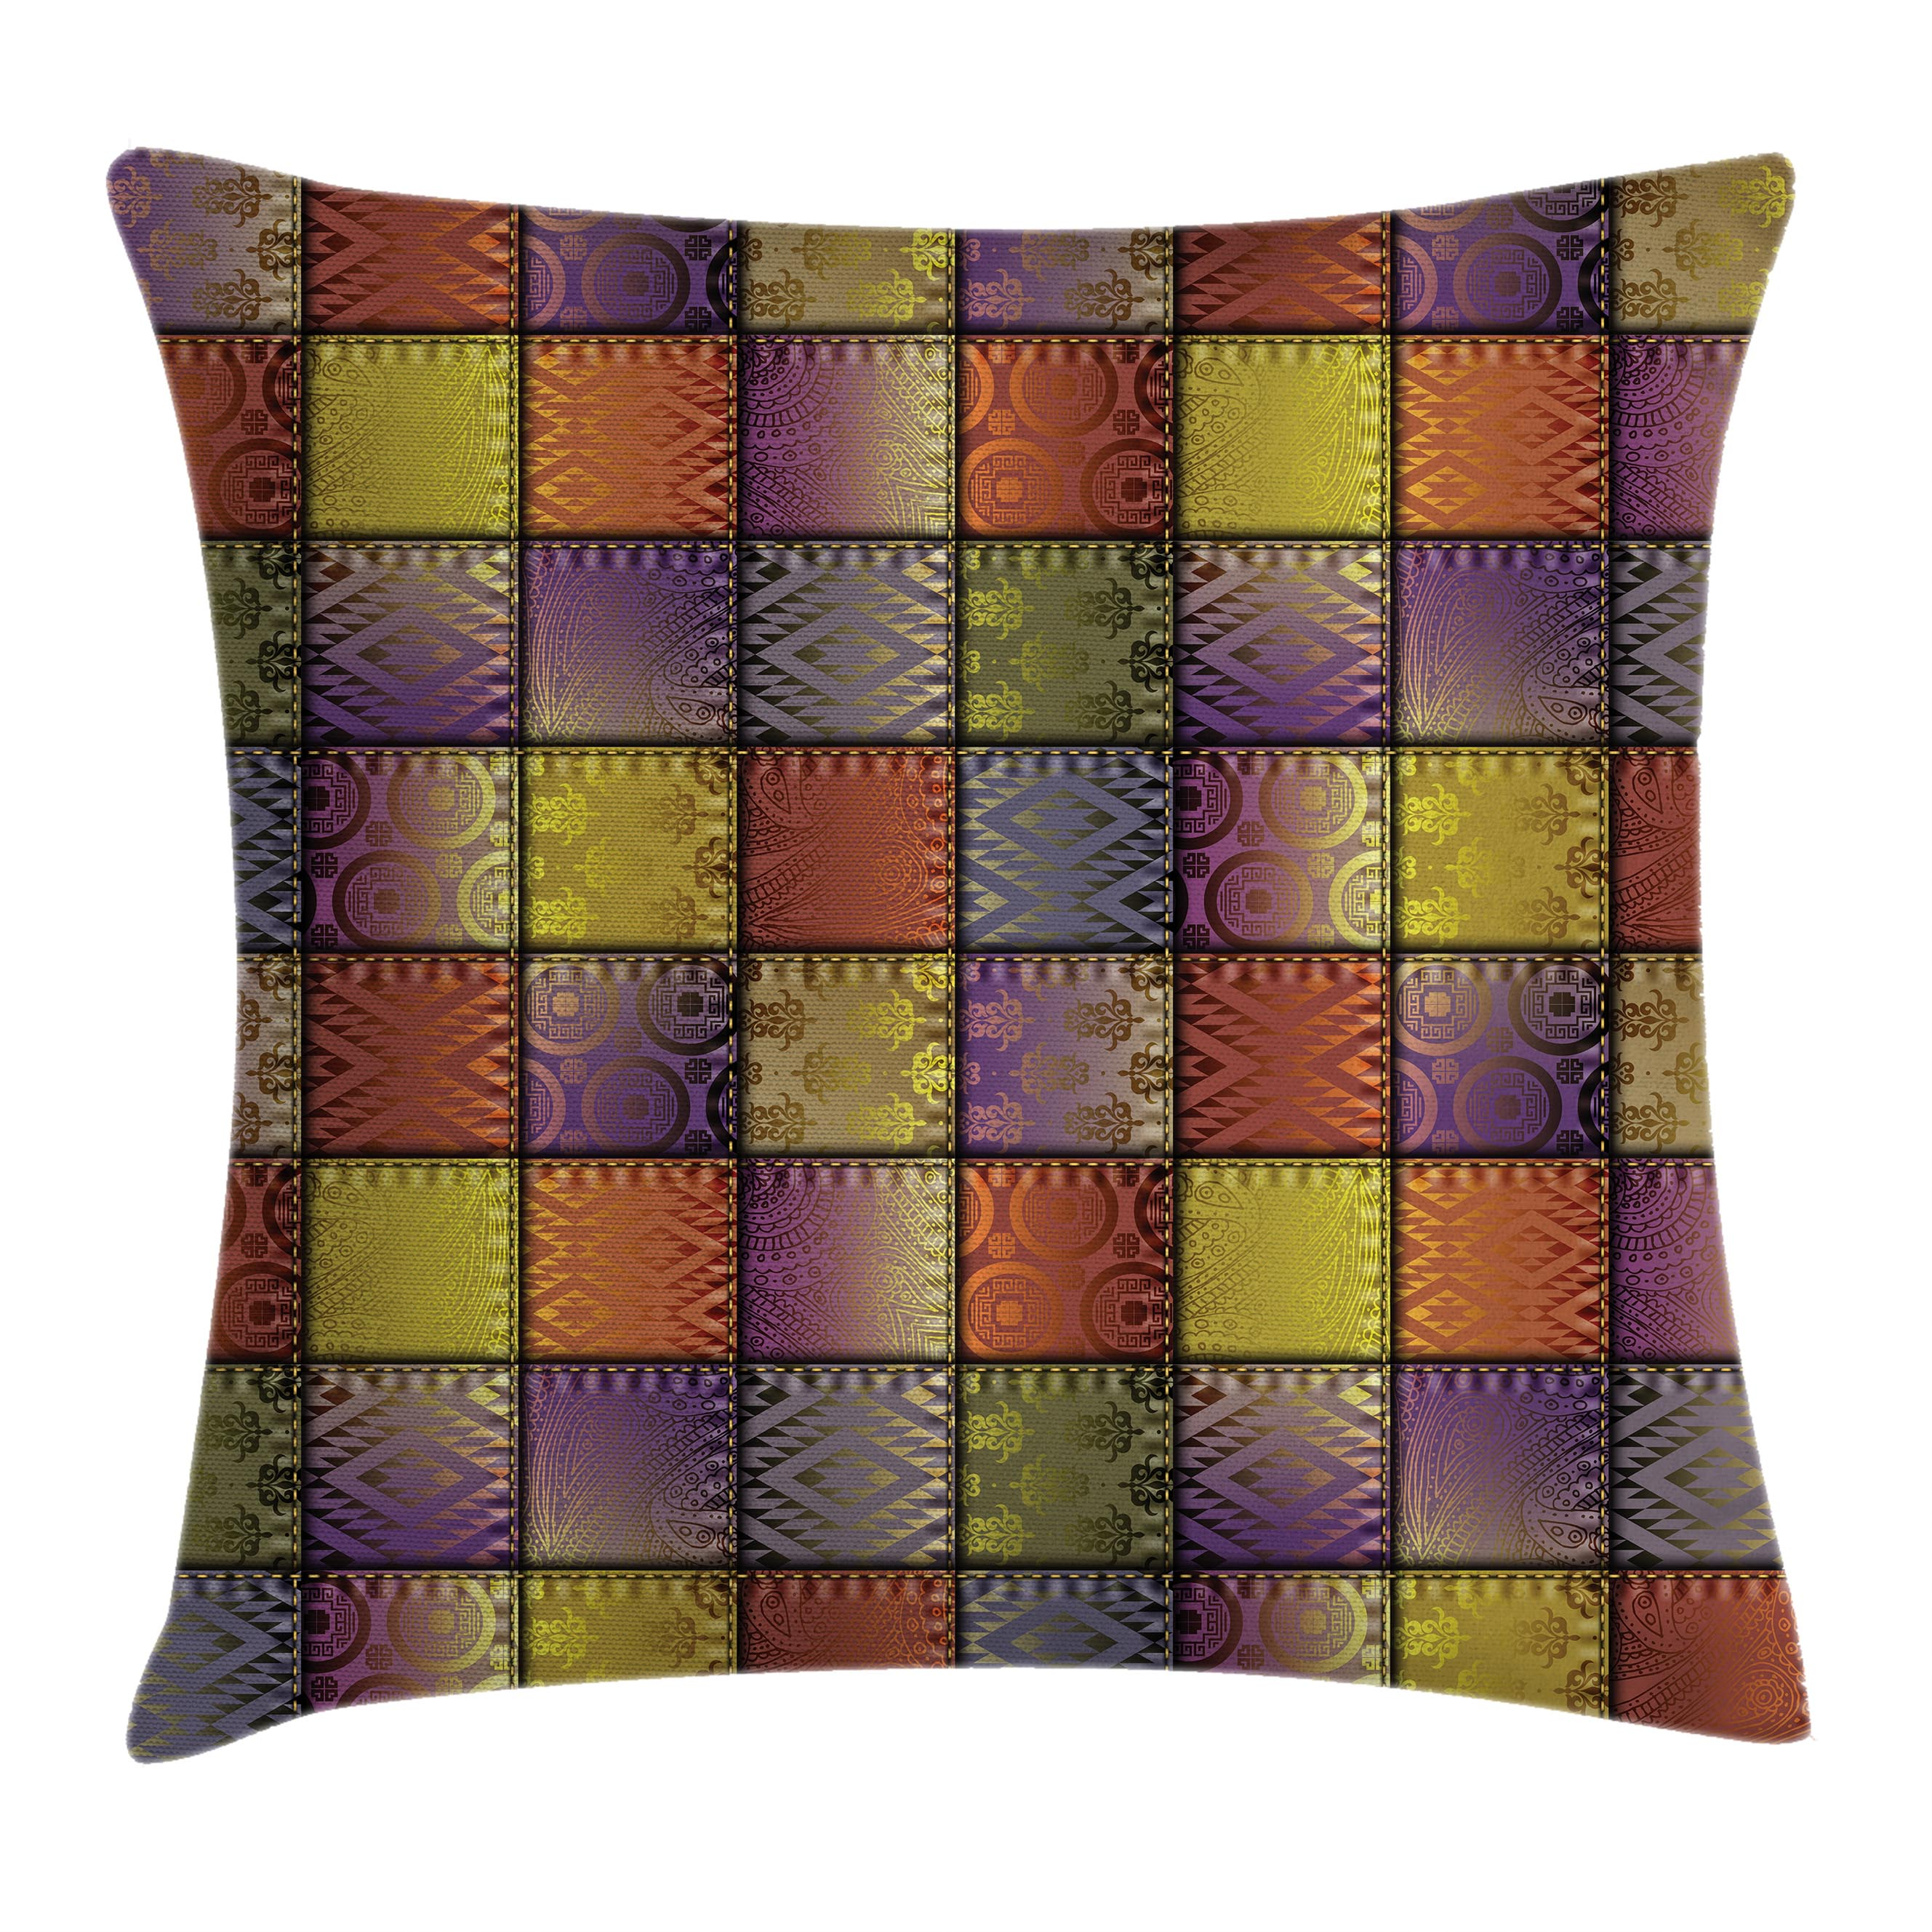 Fabric Throw Pillow Cushion Cover, Stitch-Like Digital Mix Motif with Inner Triangle Round Shapes Image, Decorative Square Accent Pillow Case, 16 X 16 Inches, Purple Gold and Cinnamon, by Ambesonne